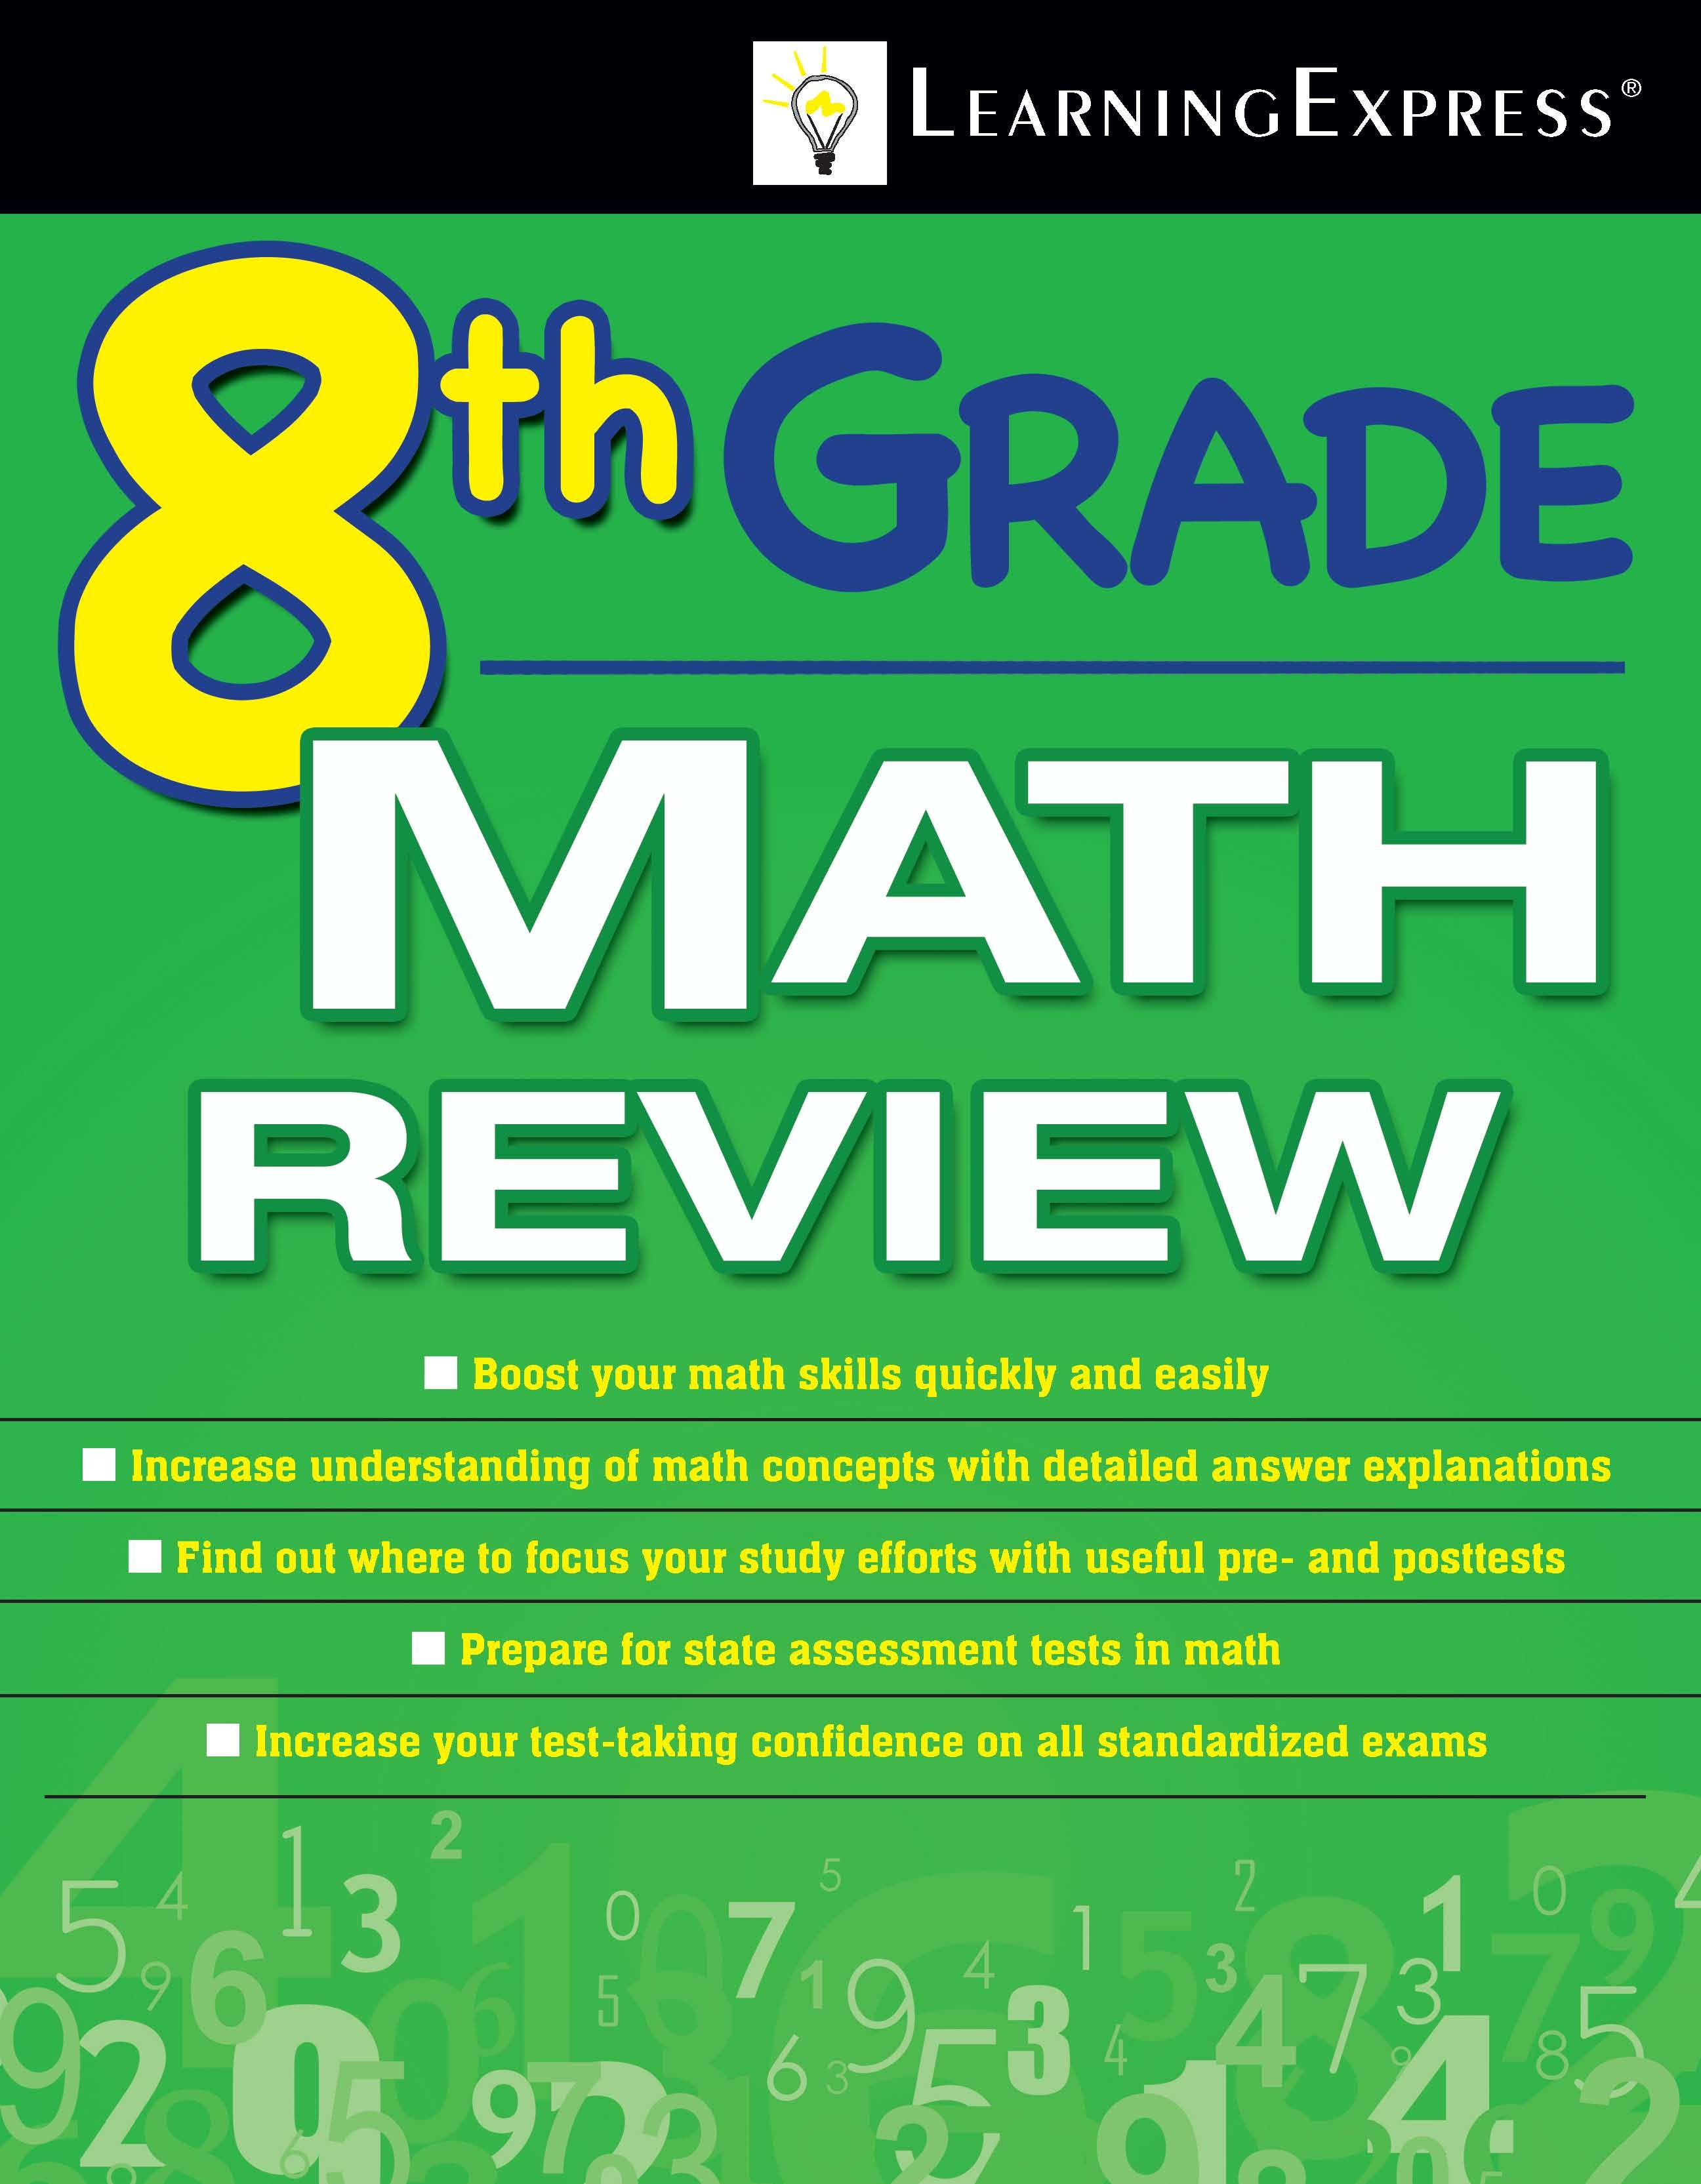 8th Grade Math Review Helps Students Excel On The Math Sections Of The 8th Grade Learning